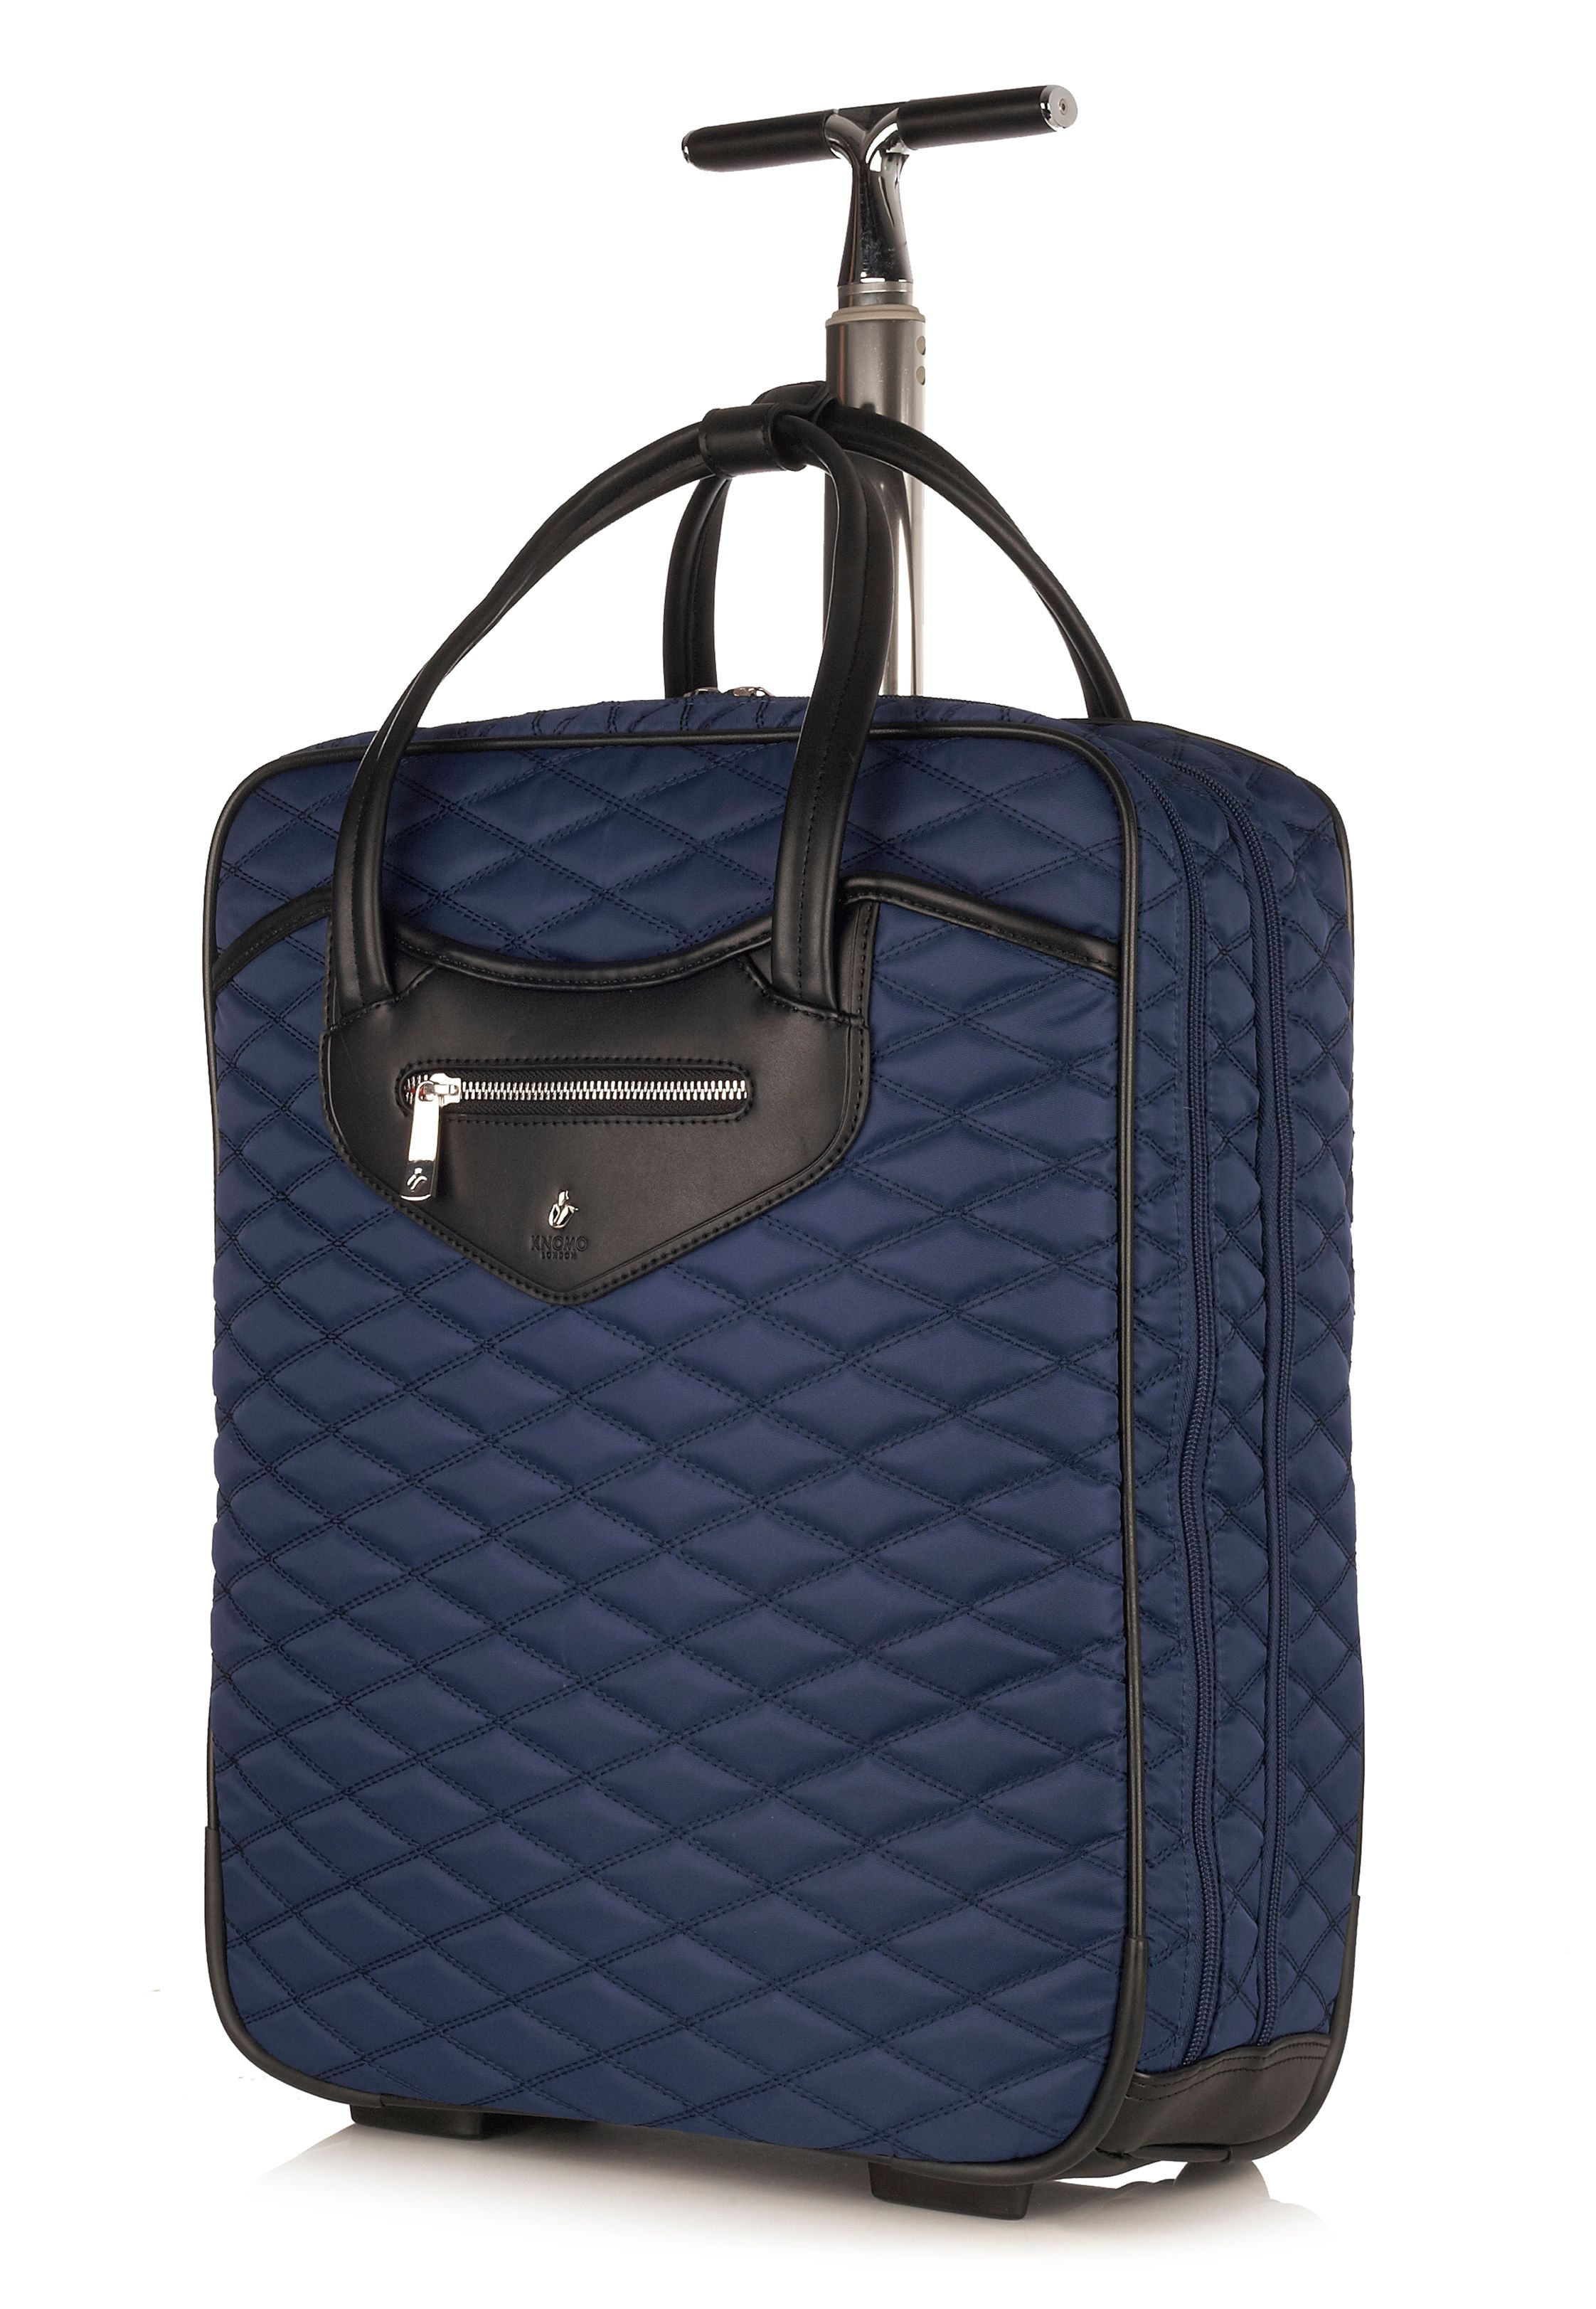 Scala marine business bag